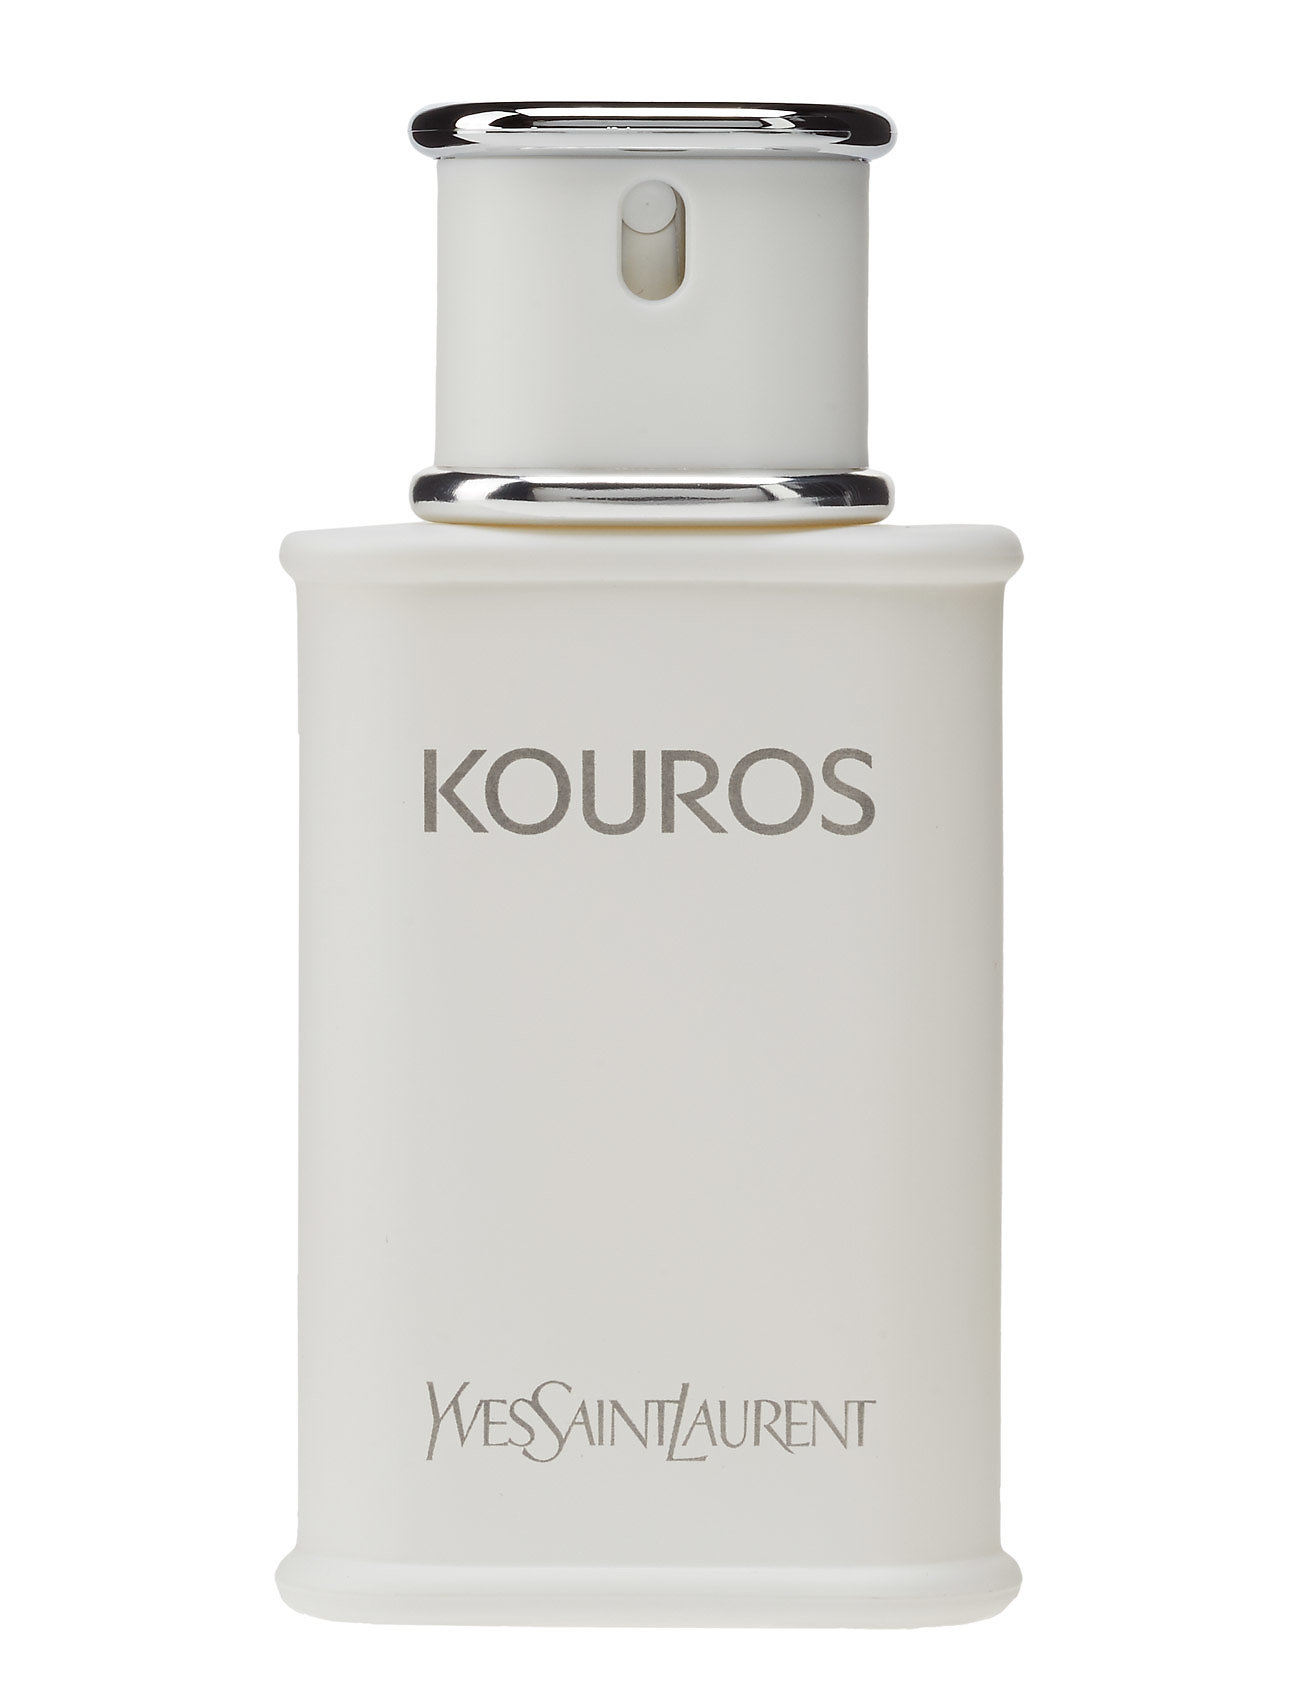 yves saint laurent Kouros eau de toilette natural spray 50 ml. fra boozt.com dk